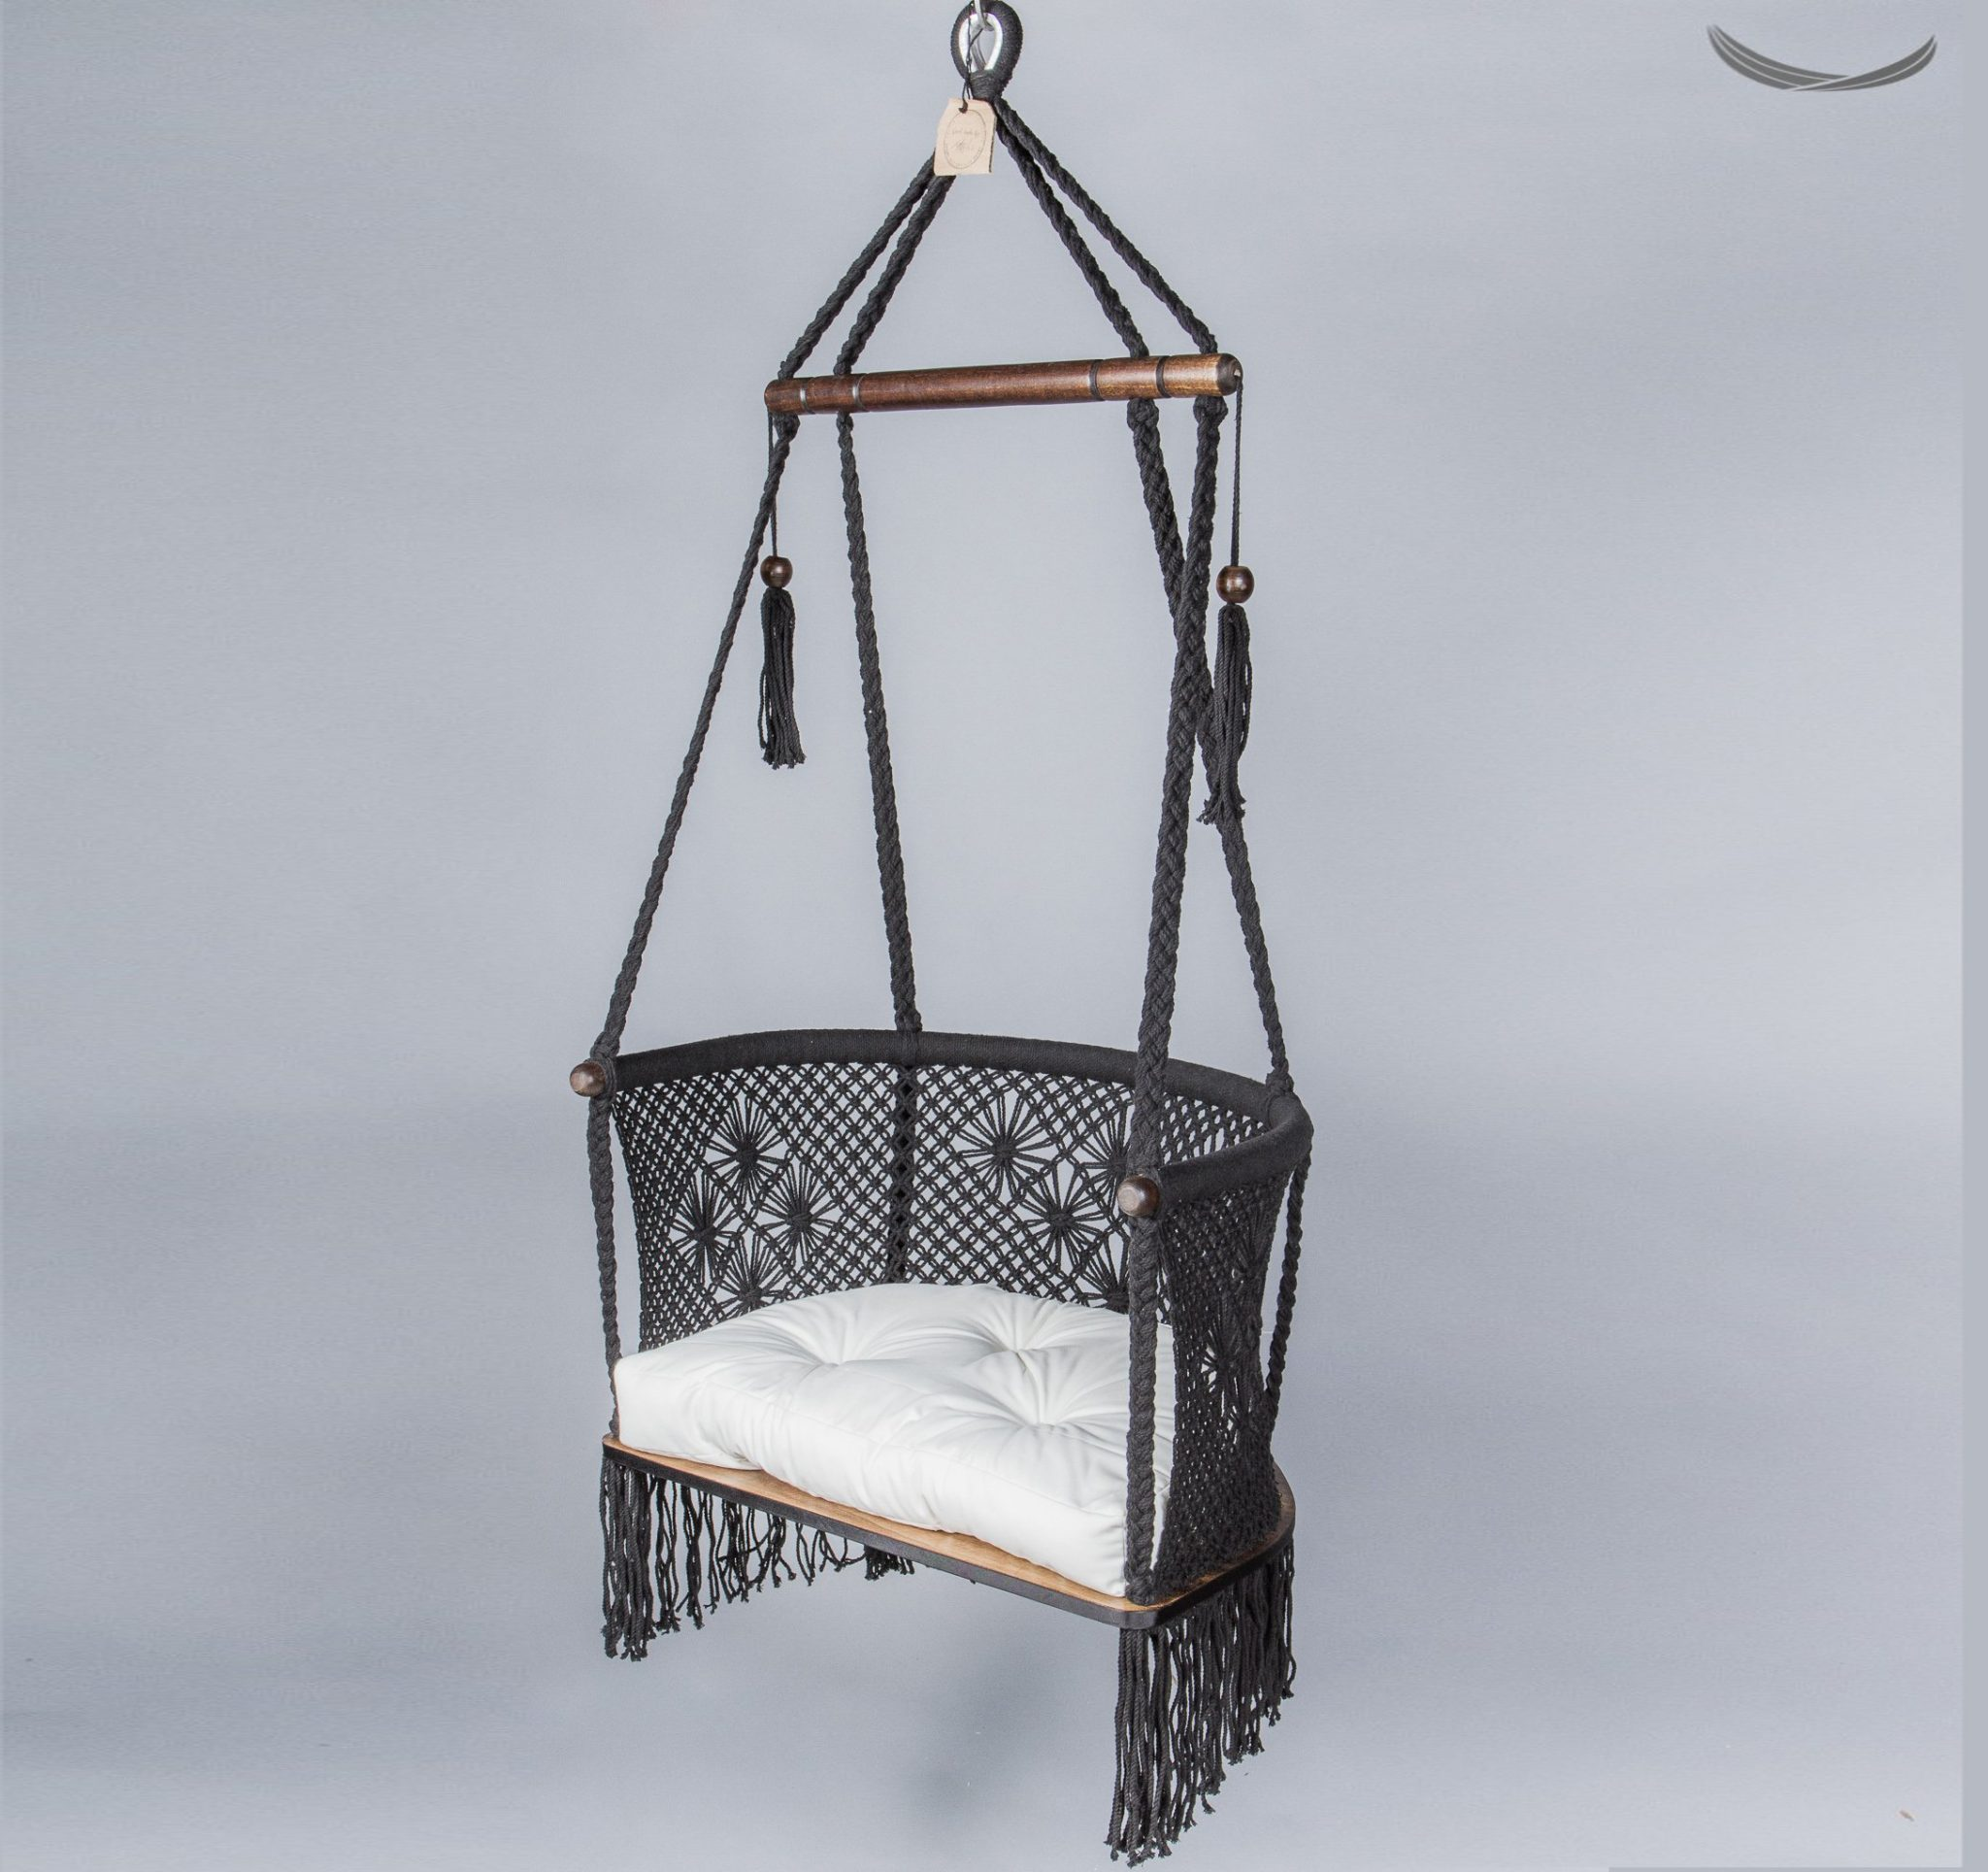 swing chair benefits how to tie a sash review stylish macrame hanging by hang hammock collective